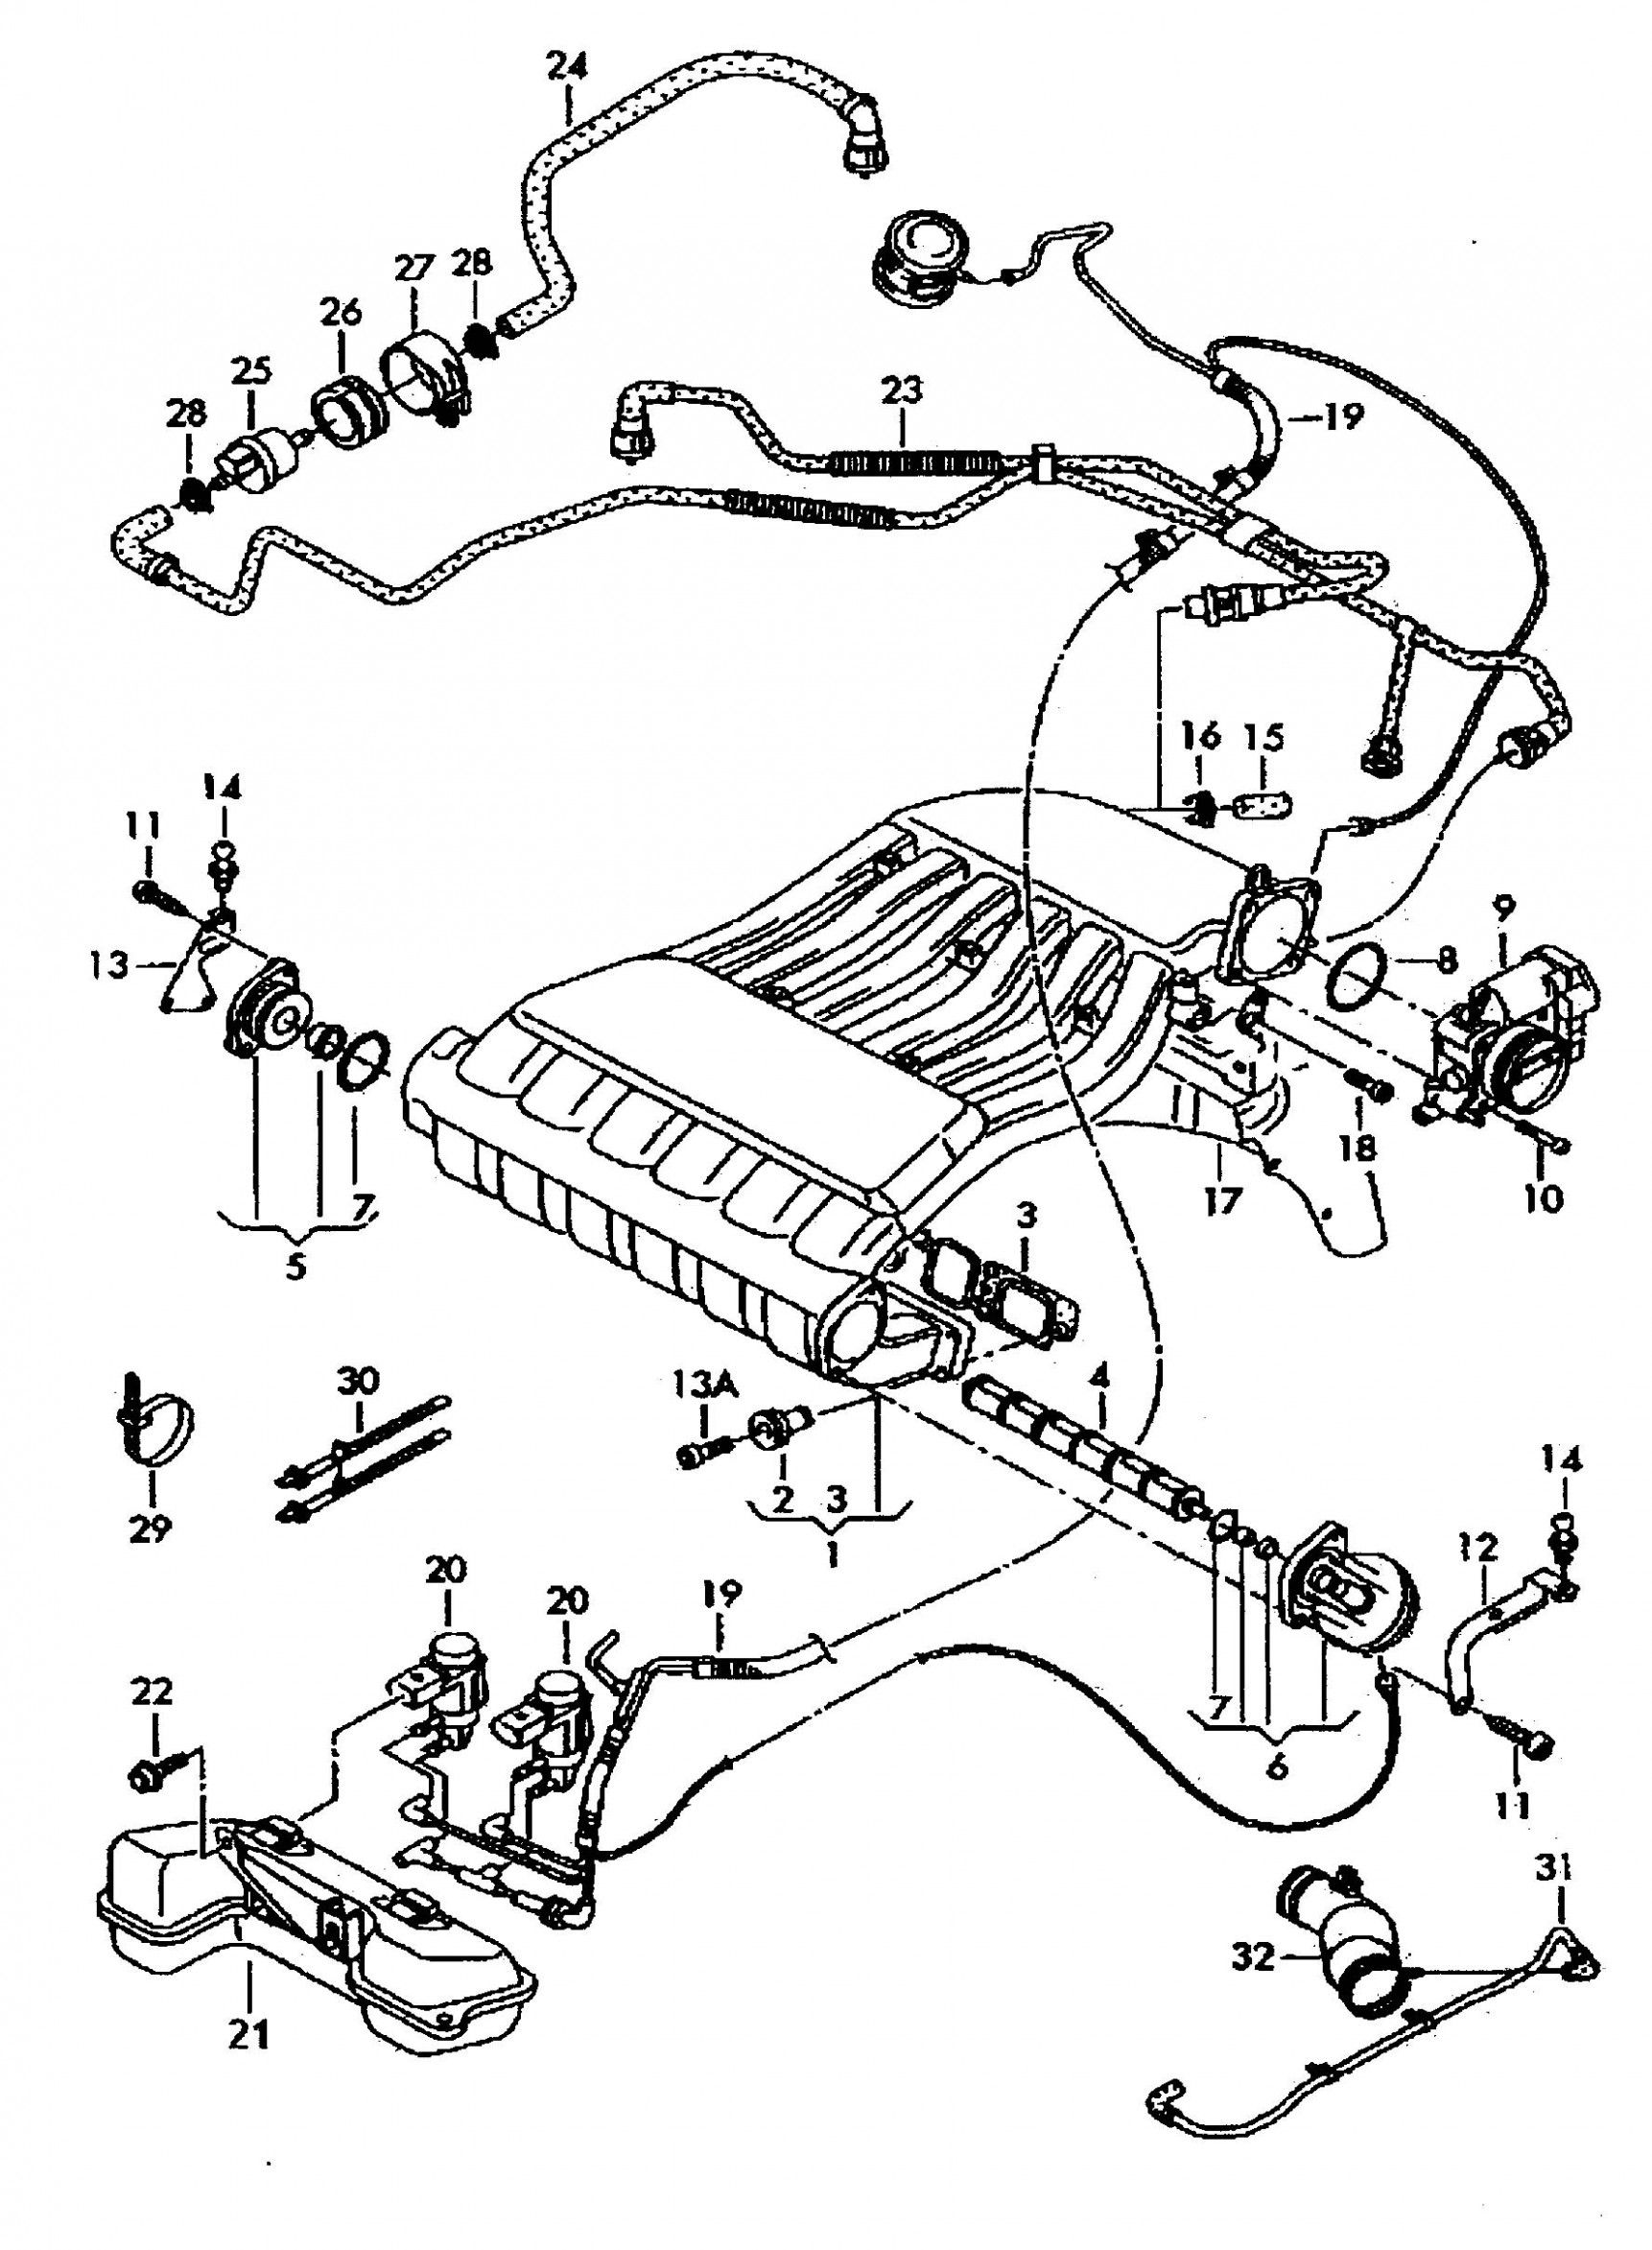 2000 volkswagen jetta engine diagram   printable worksheets and activities  for teachers, parents, tutors and homeschool families  indymoves.org